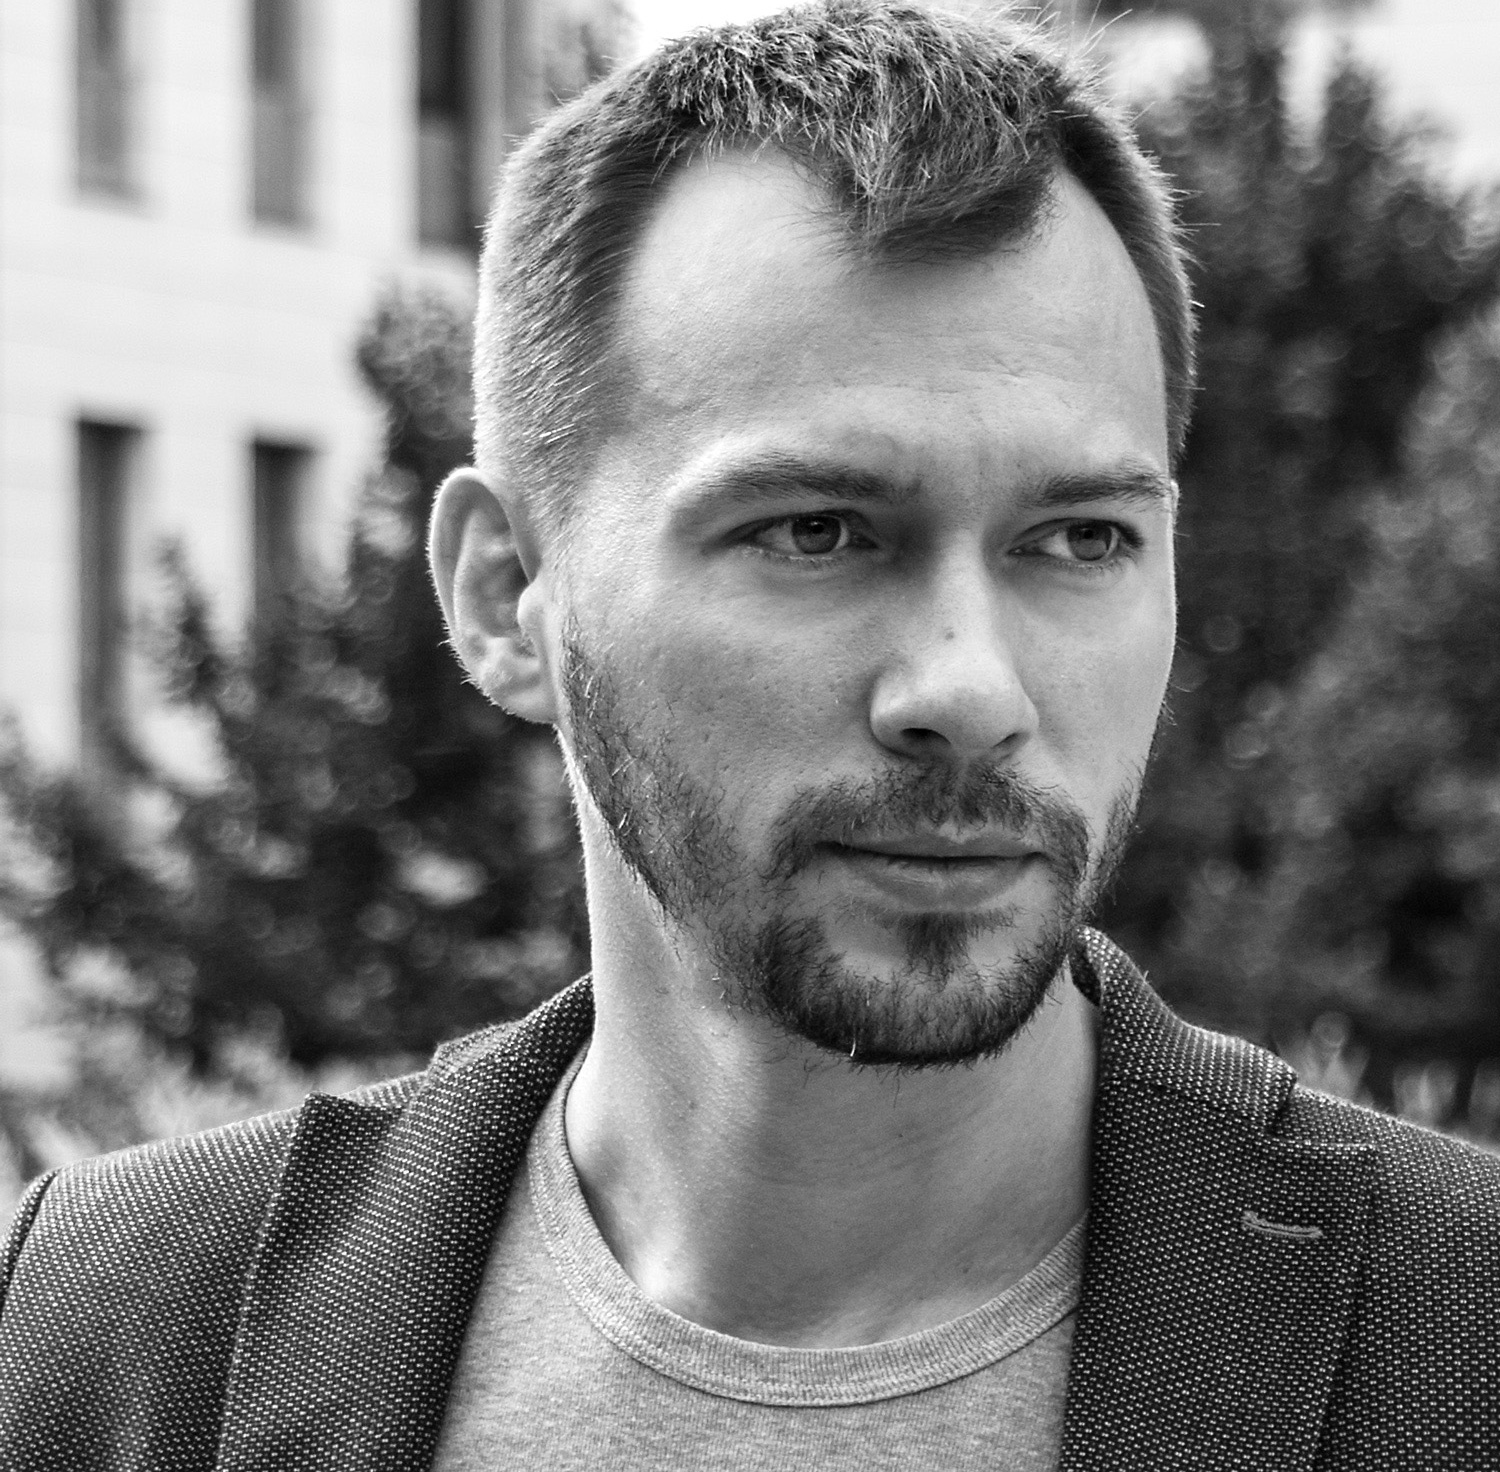 sergey-golubovsky-joins-as-new-creative-director-of-liquid-retail